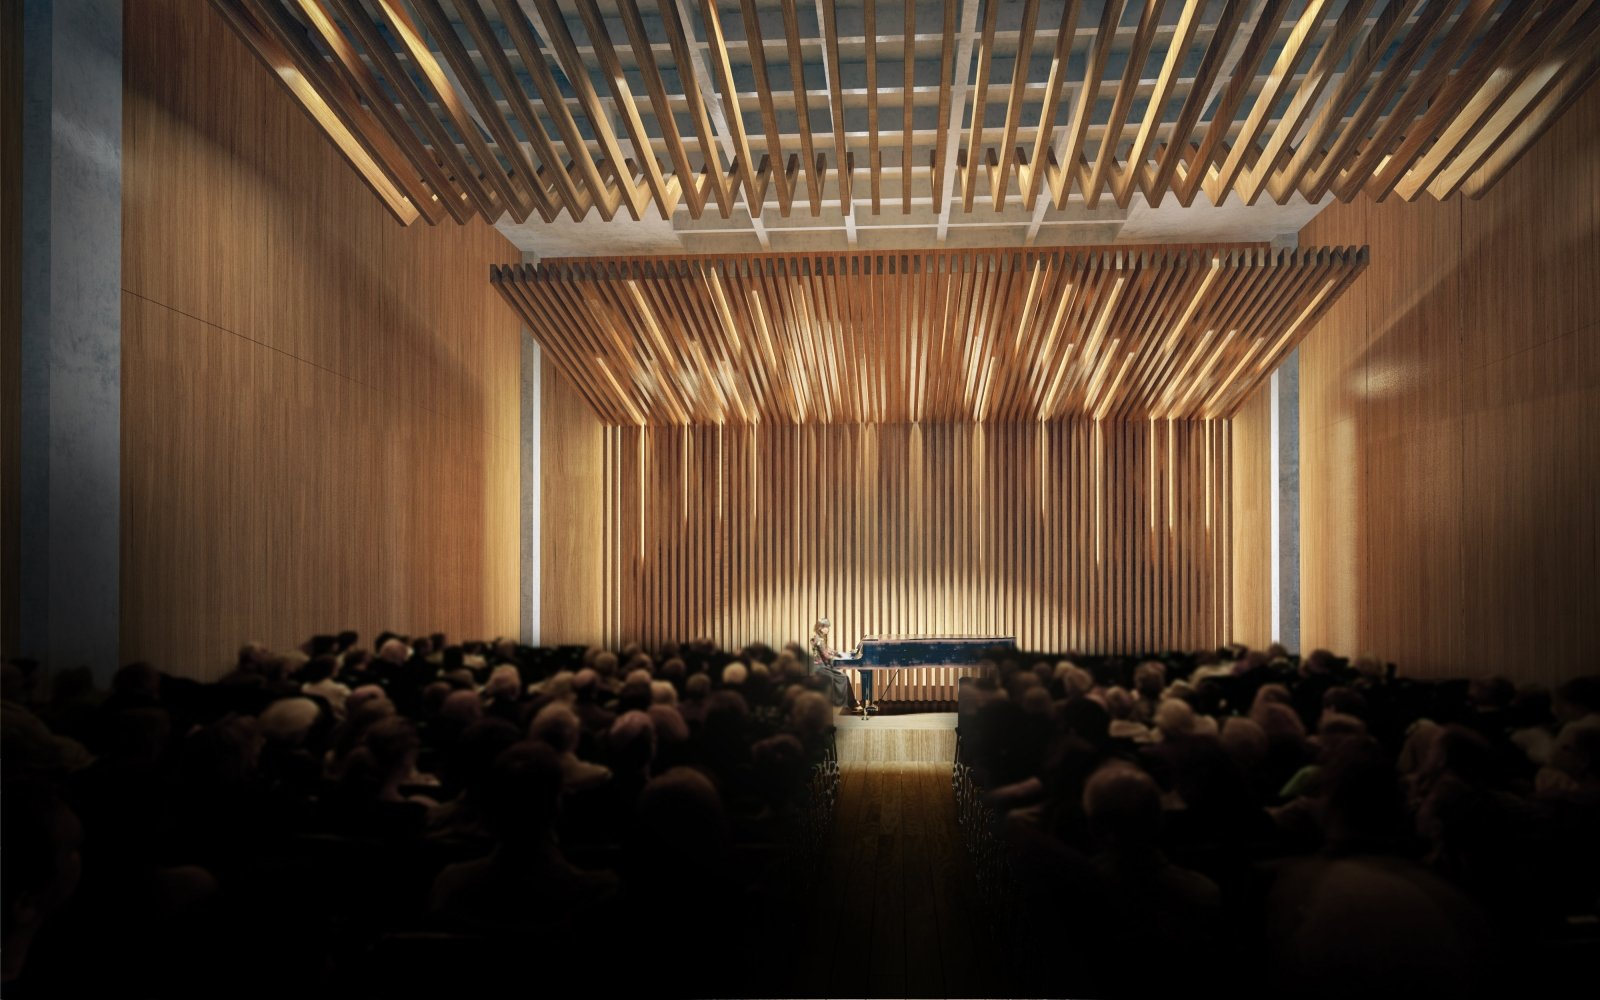 An in-house 180-seat theater will hold intimate concerts by the Sacramento Philharmonic & Opera, which plans to move its offices into the building.